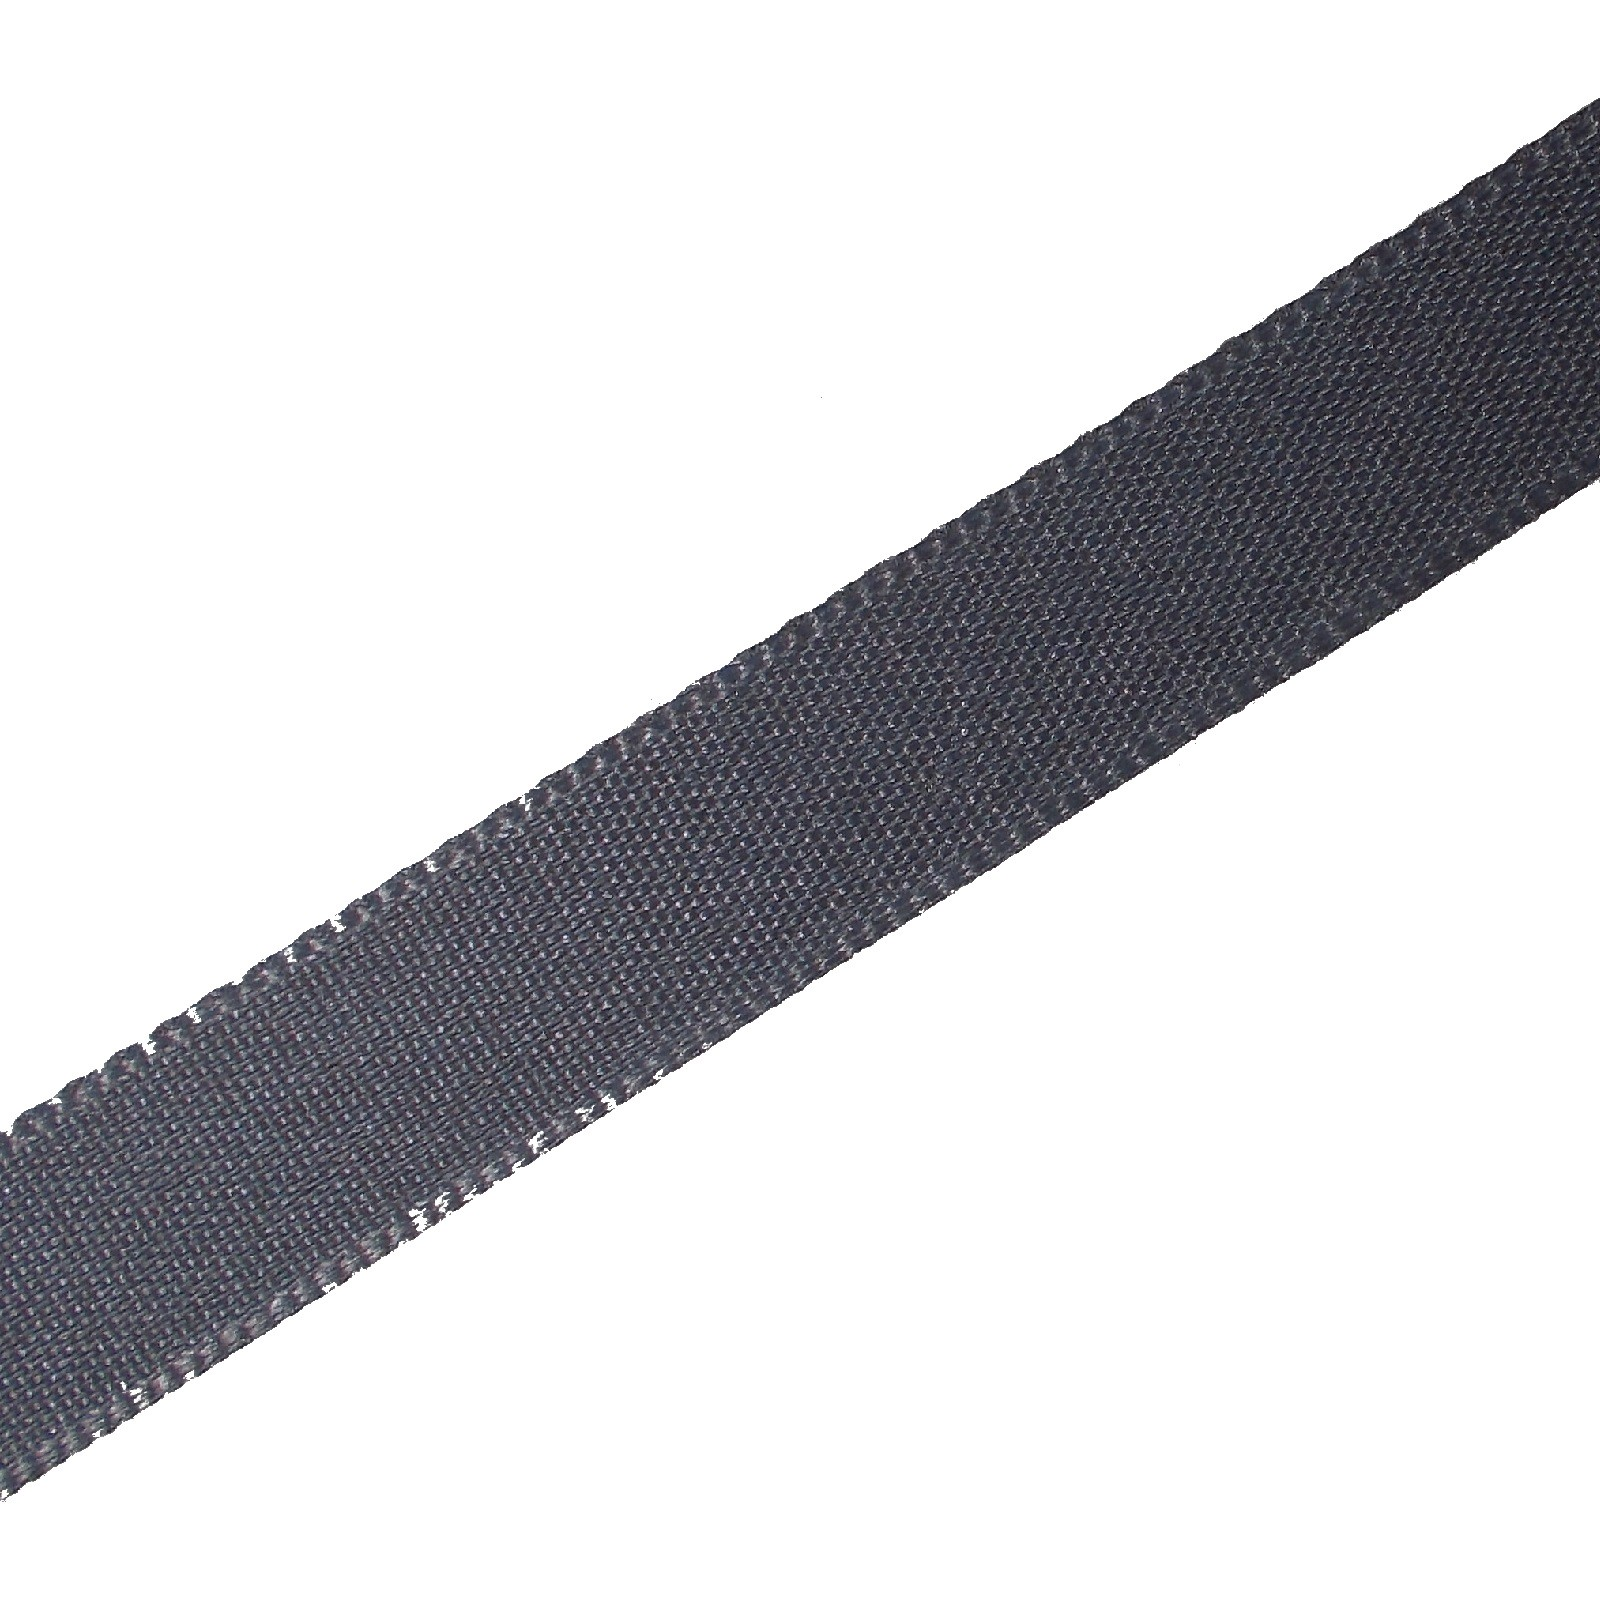 Berisfords Seam Binding Polyester Ribbon Tape 12mm wide Dark Grey 3 metre length